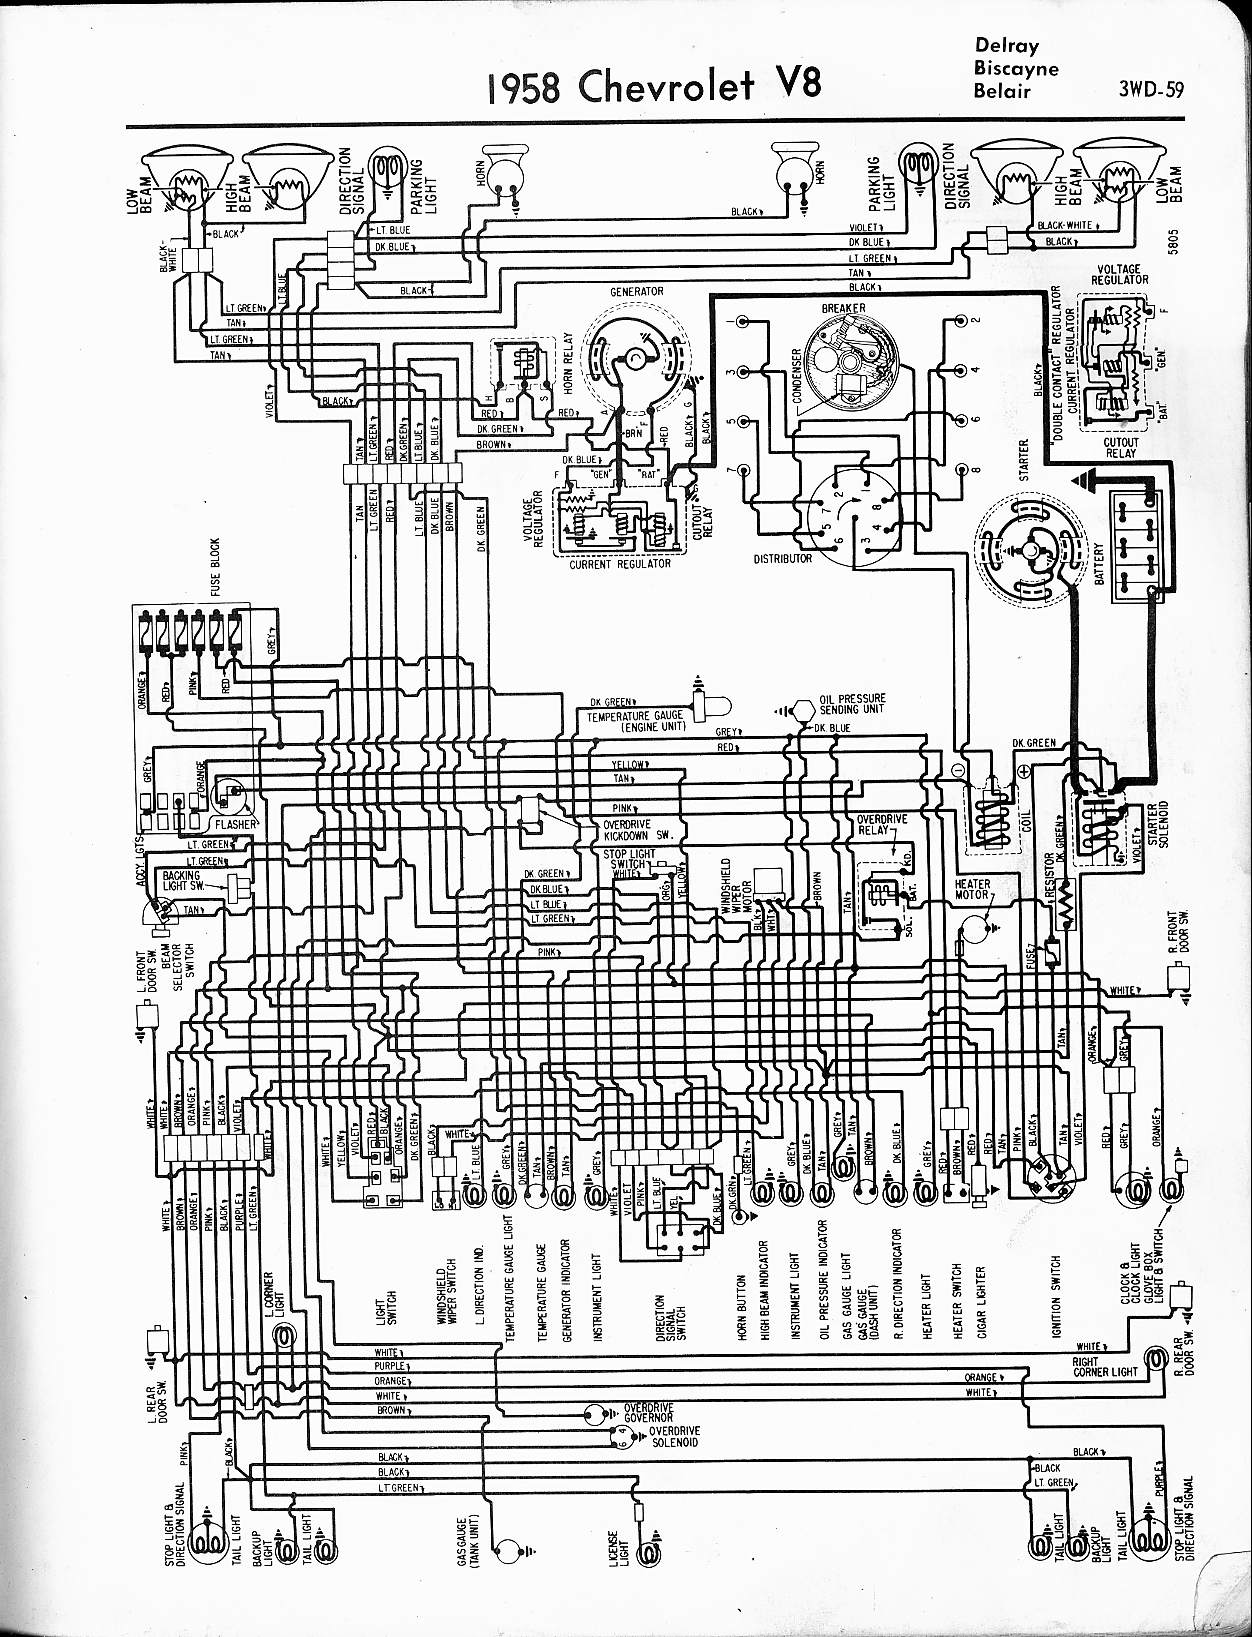 MWireChev58_3WD 059 chevy wiring diagrams chevy radio wiring \u2022 wiring diagrams j 65 chevy wiring harness at readyjetset.co